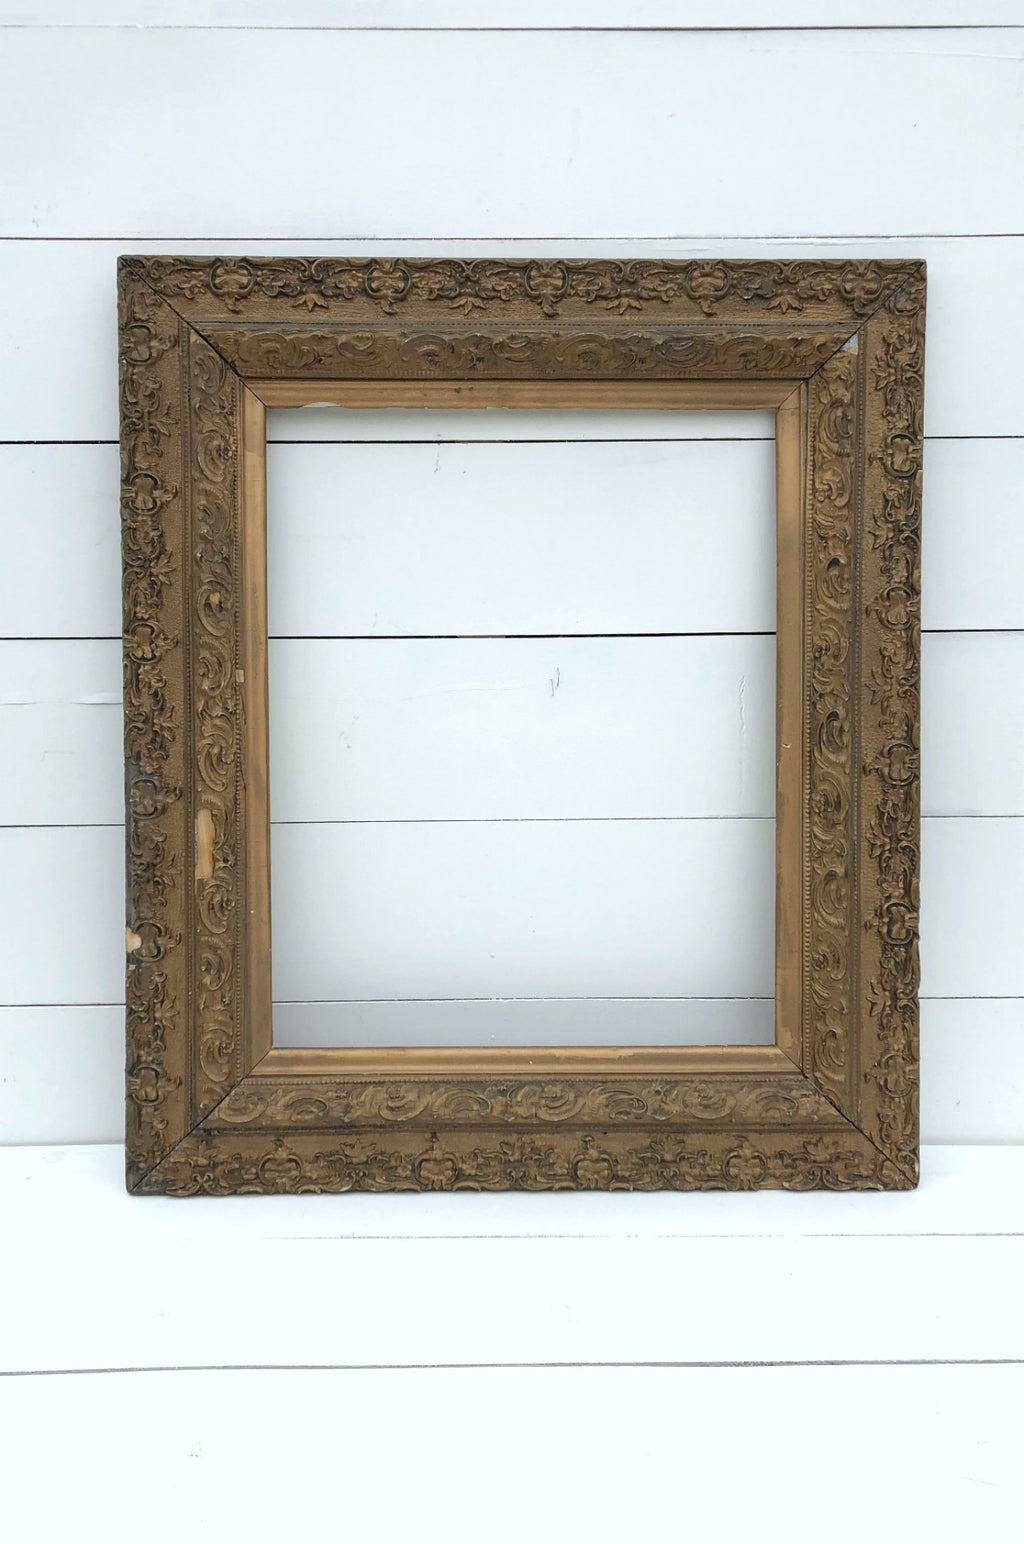 Antique gold frame for wedding decor